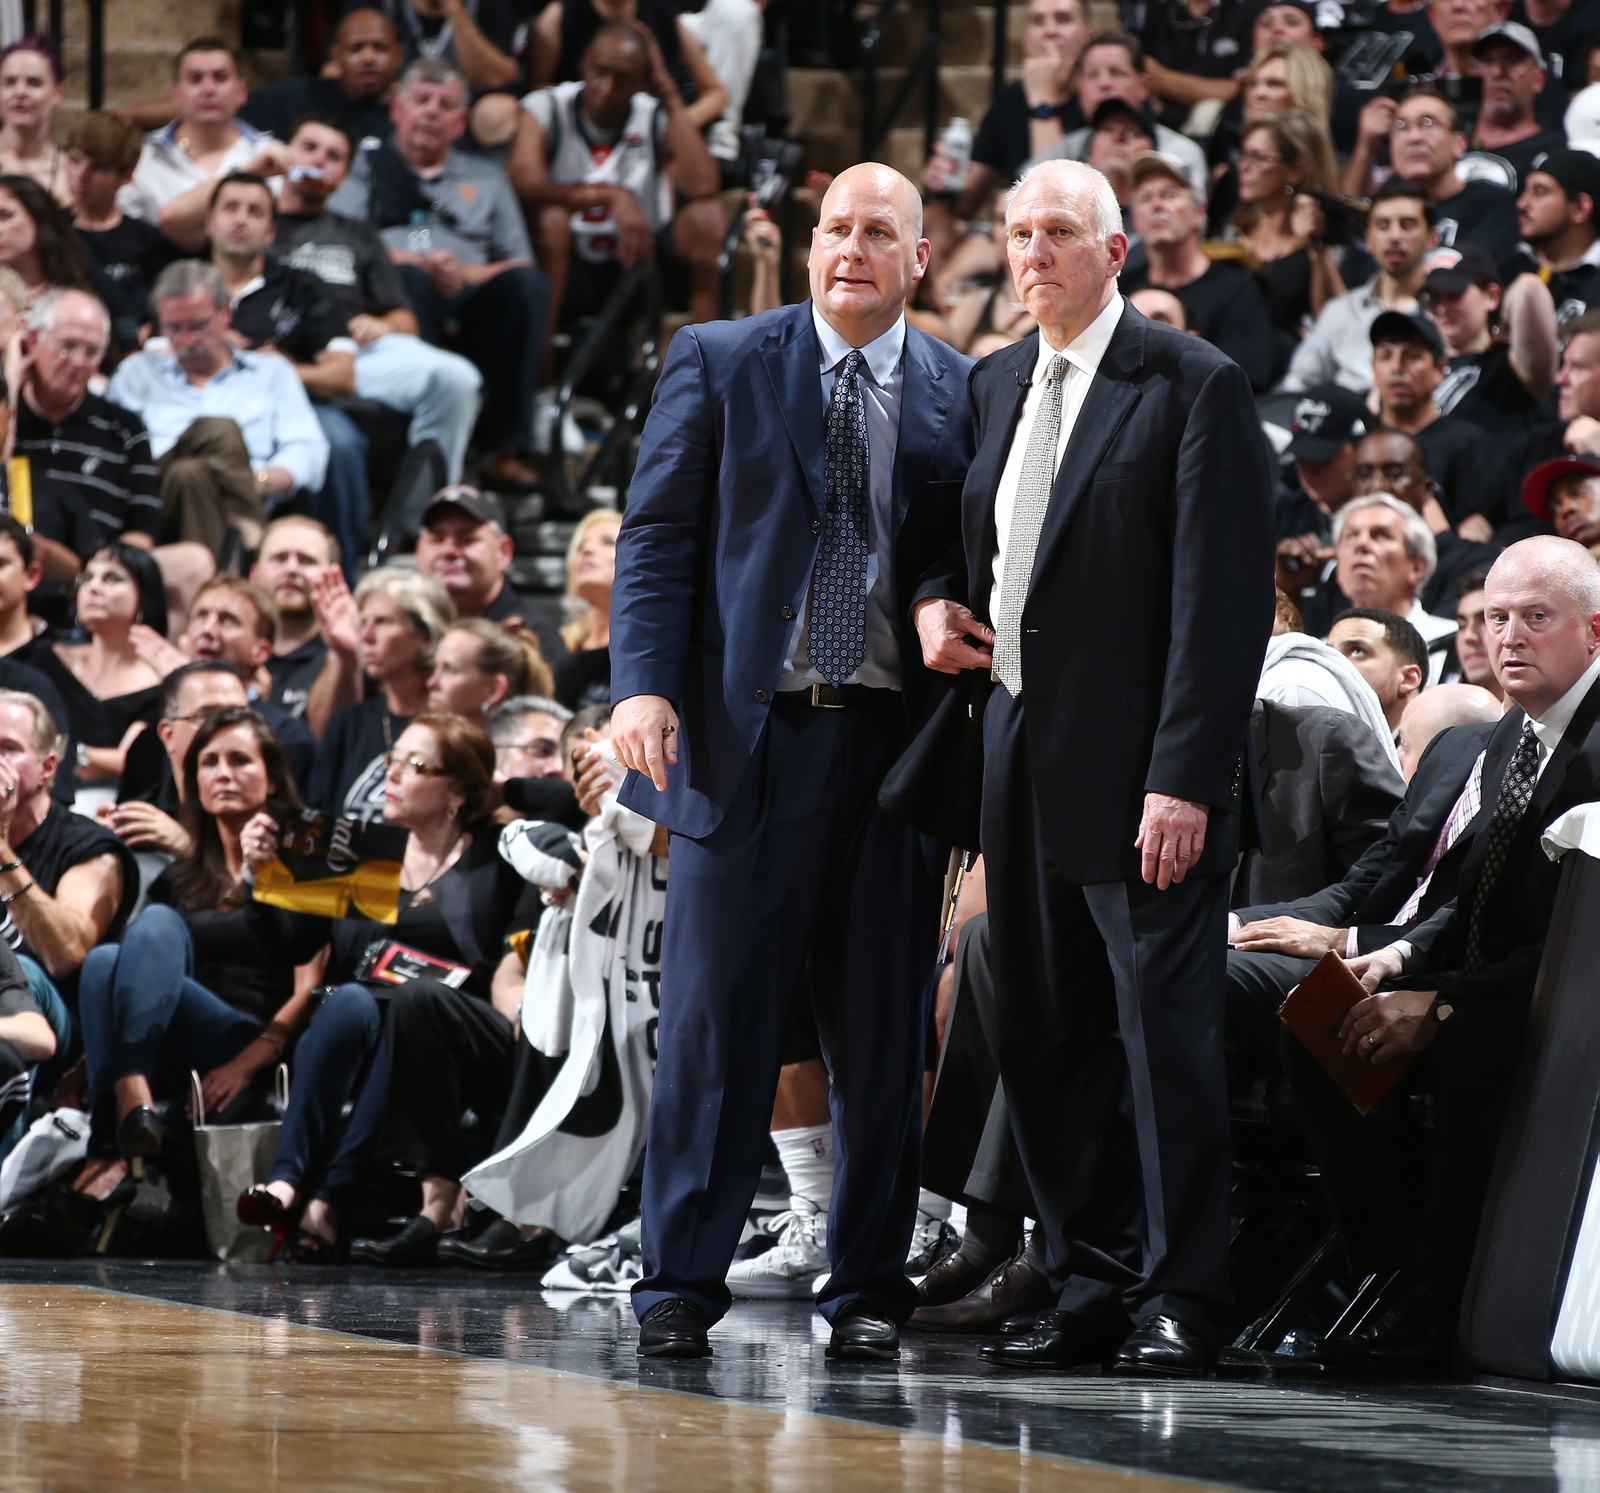 Head Coach Gregg Popovich and Assistant Coach Jim Boylen of the San Antonio Spurs in Game One of the 2014 NBA Finals at AT&T Center on June 5, 2014 in San Antonio, Texas.